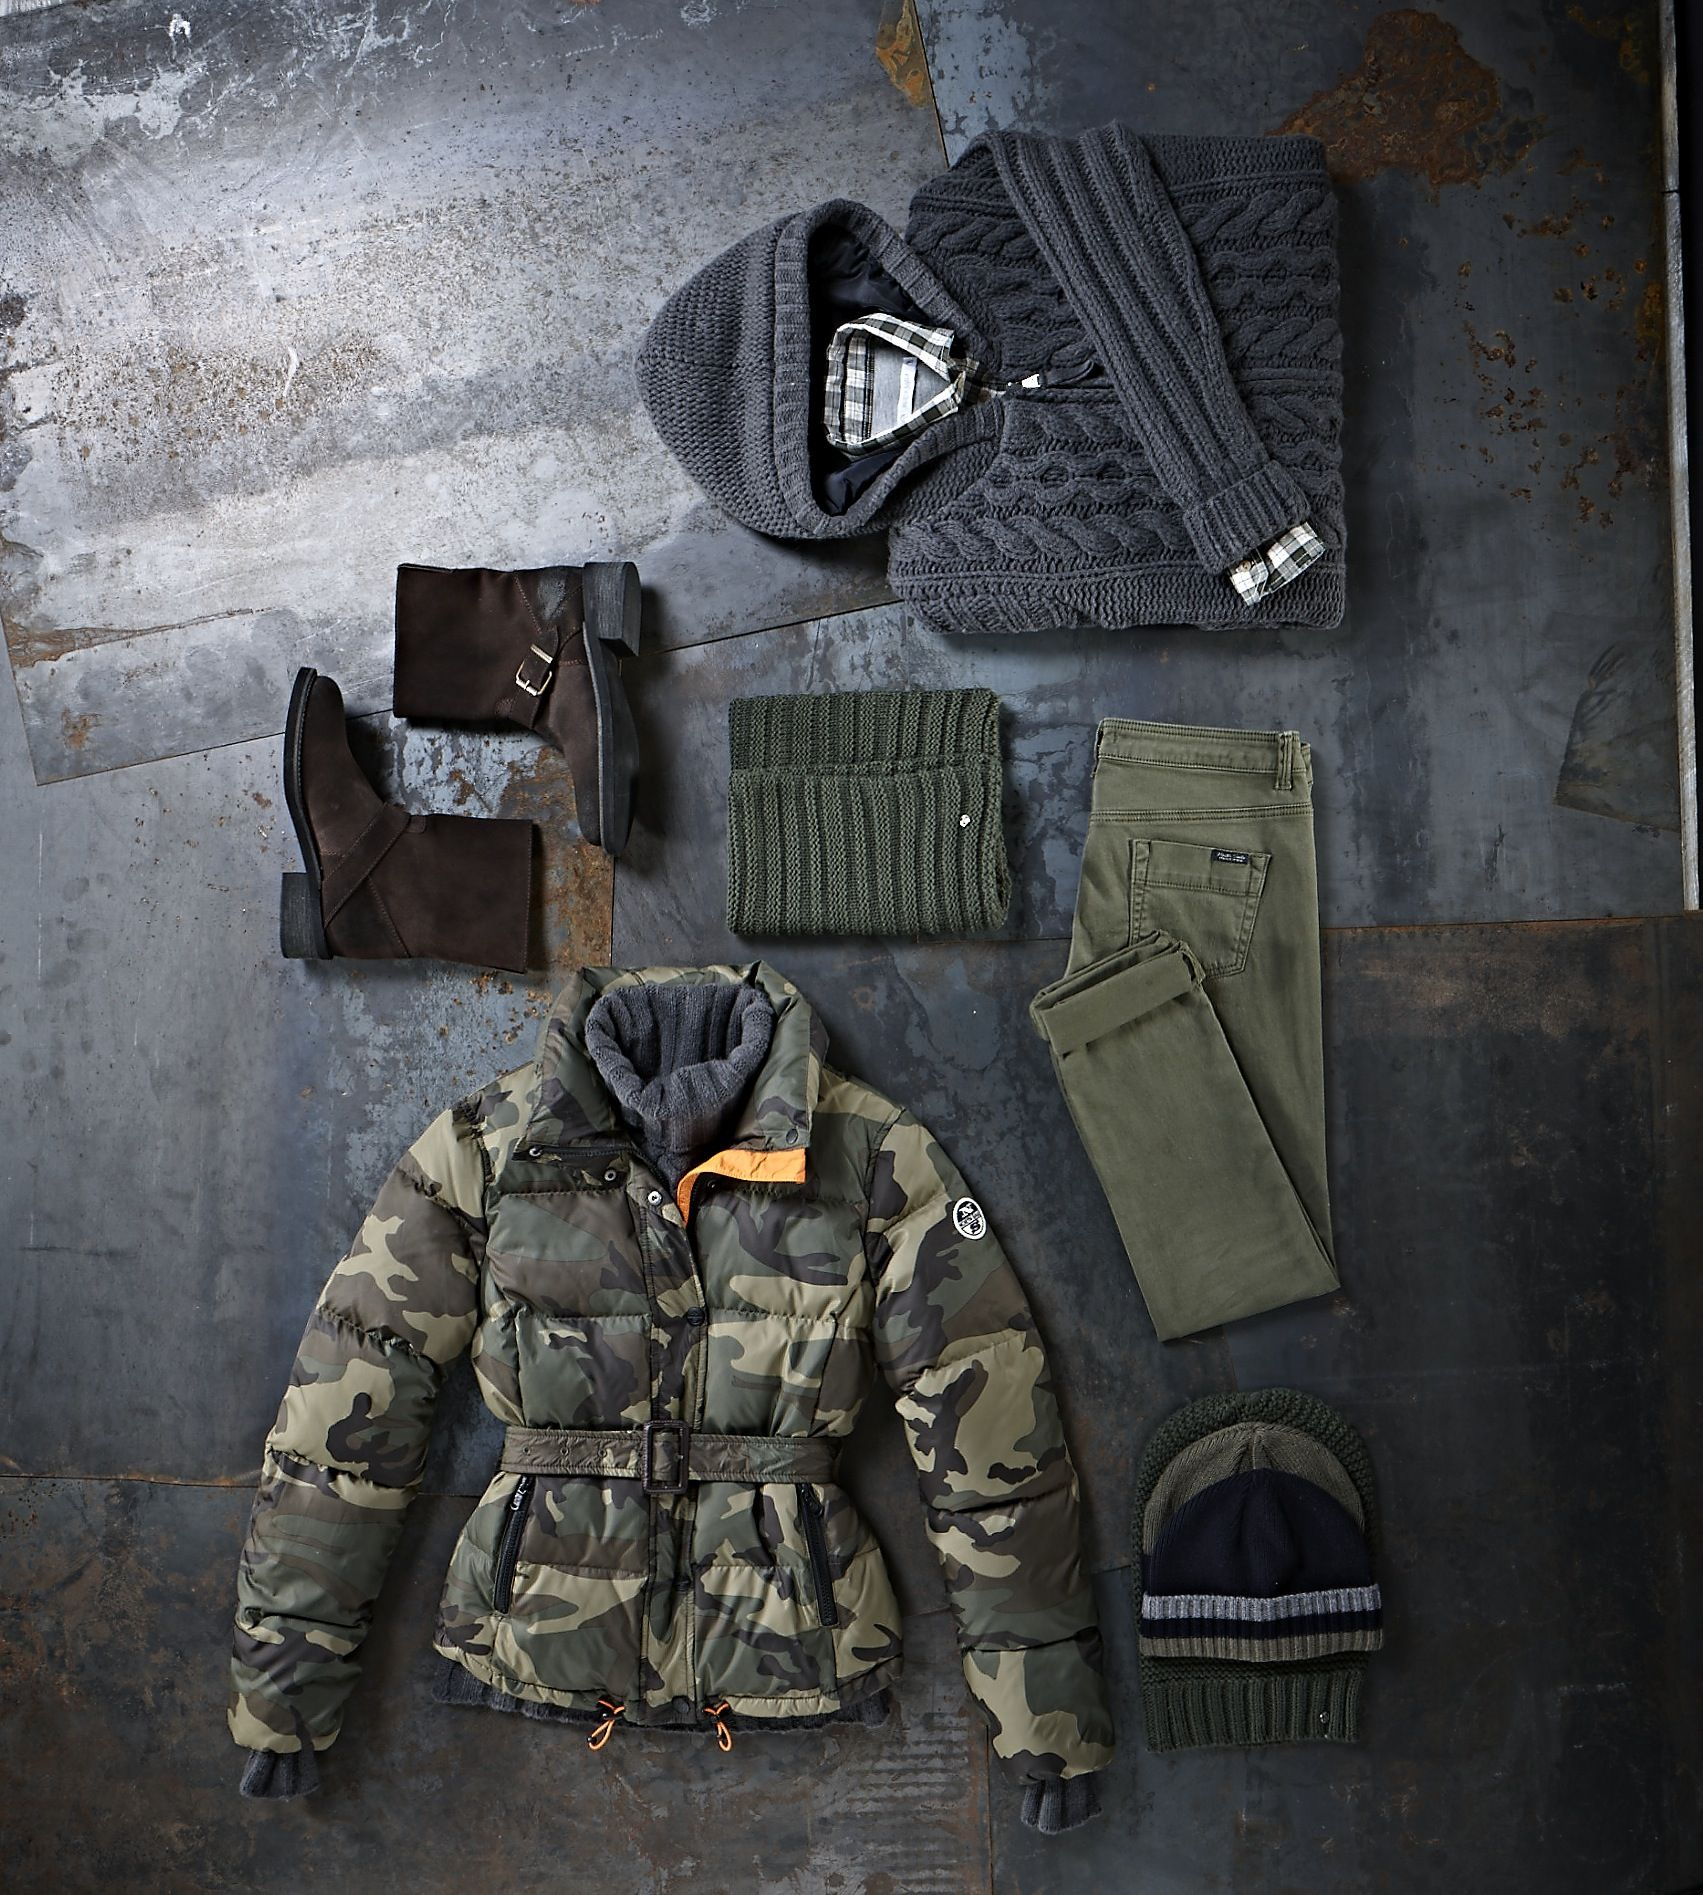 #NorthSails #Lookbook #collection #fall #winter #2013 #2014 #Cesare #Medri #jacket #camouflage #boots #pants #sweater #shirt #hat #scarf